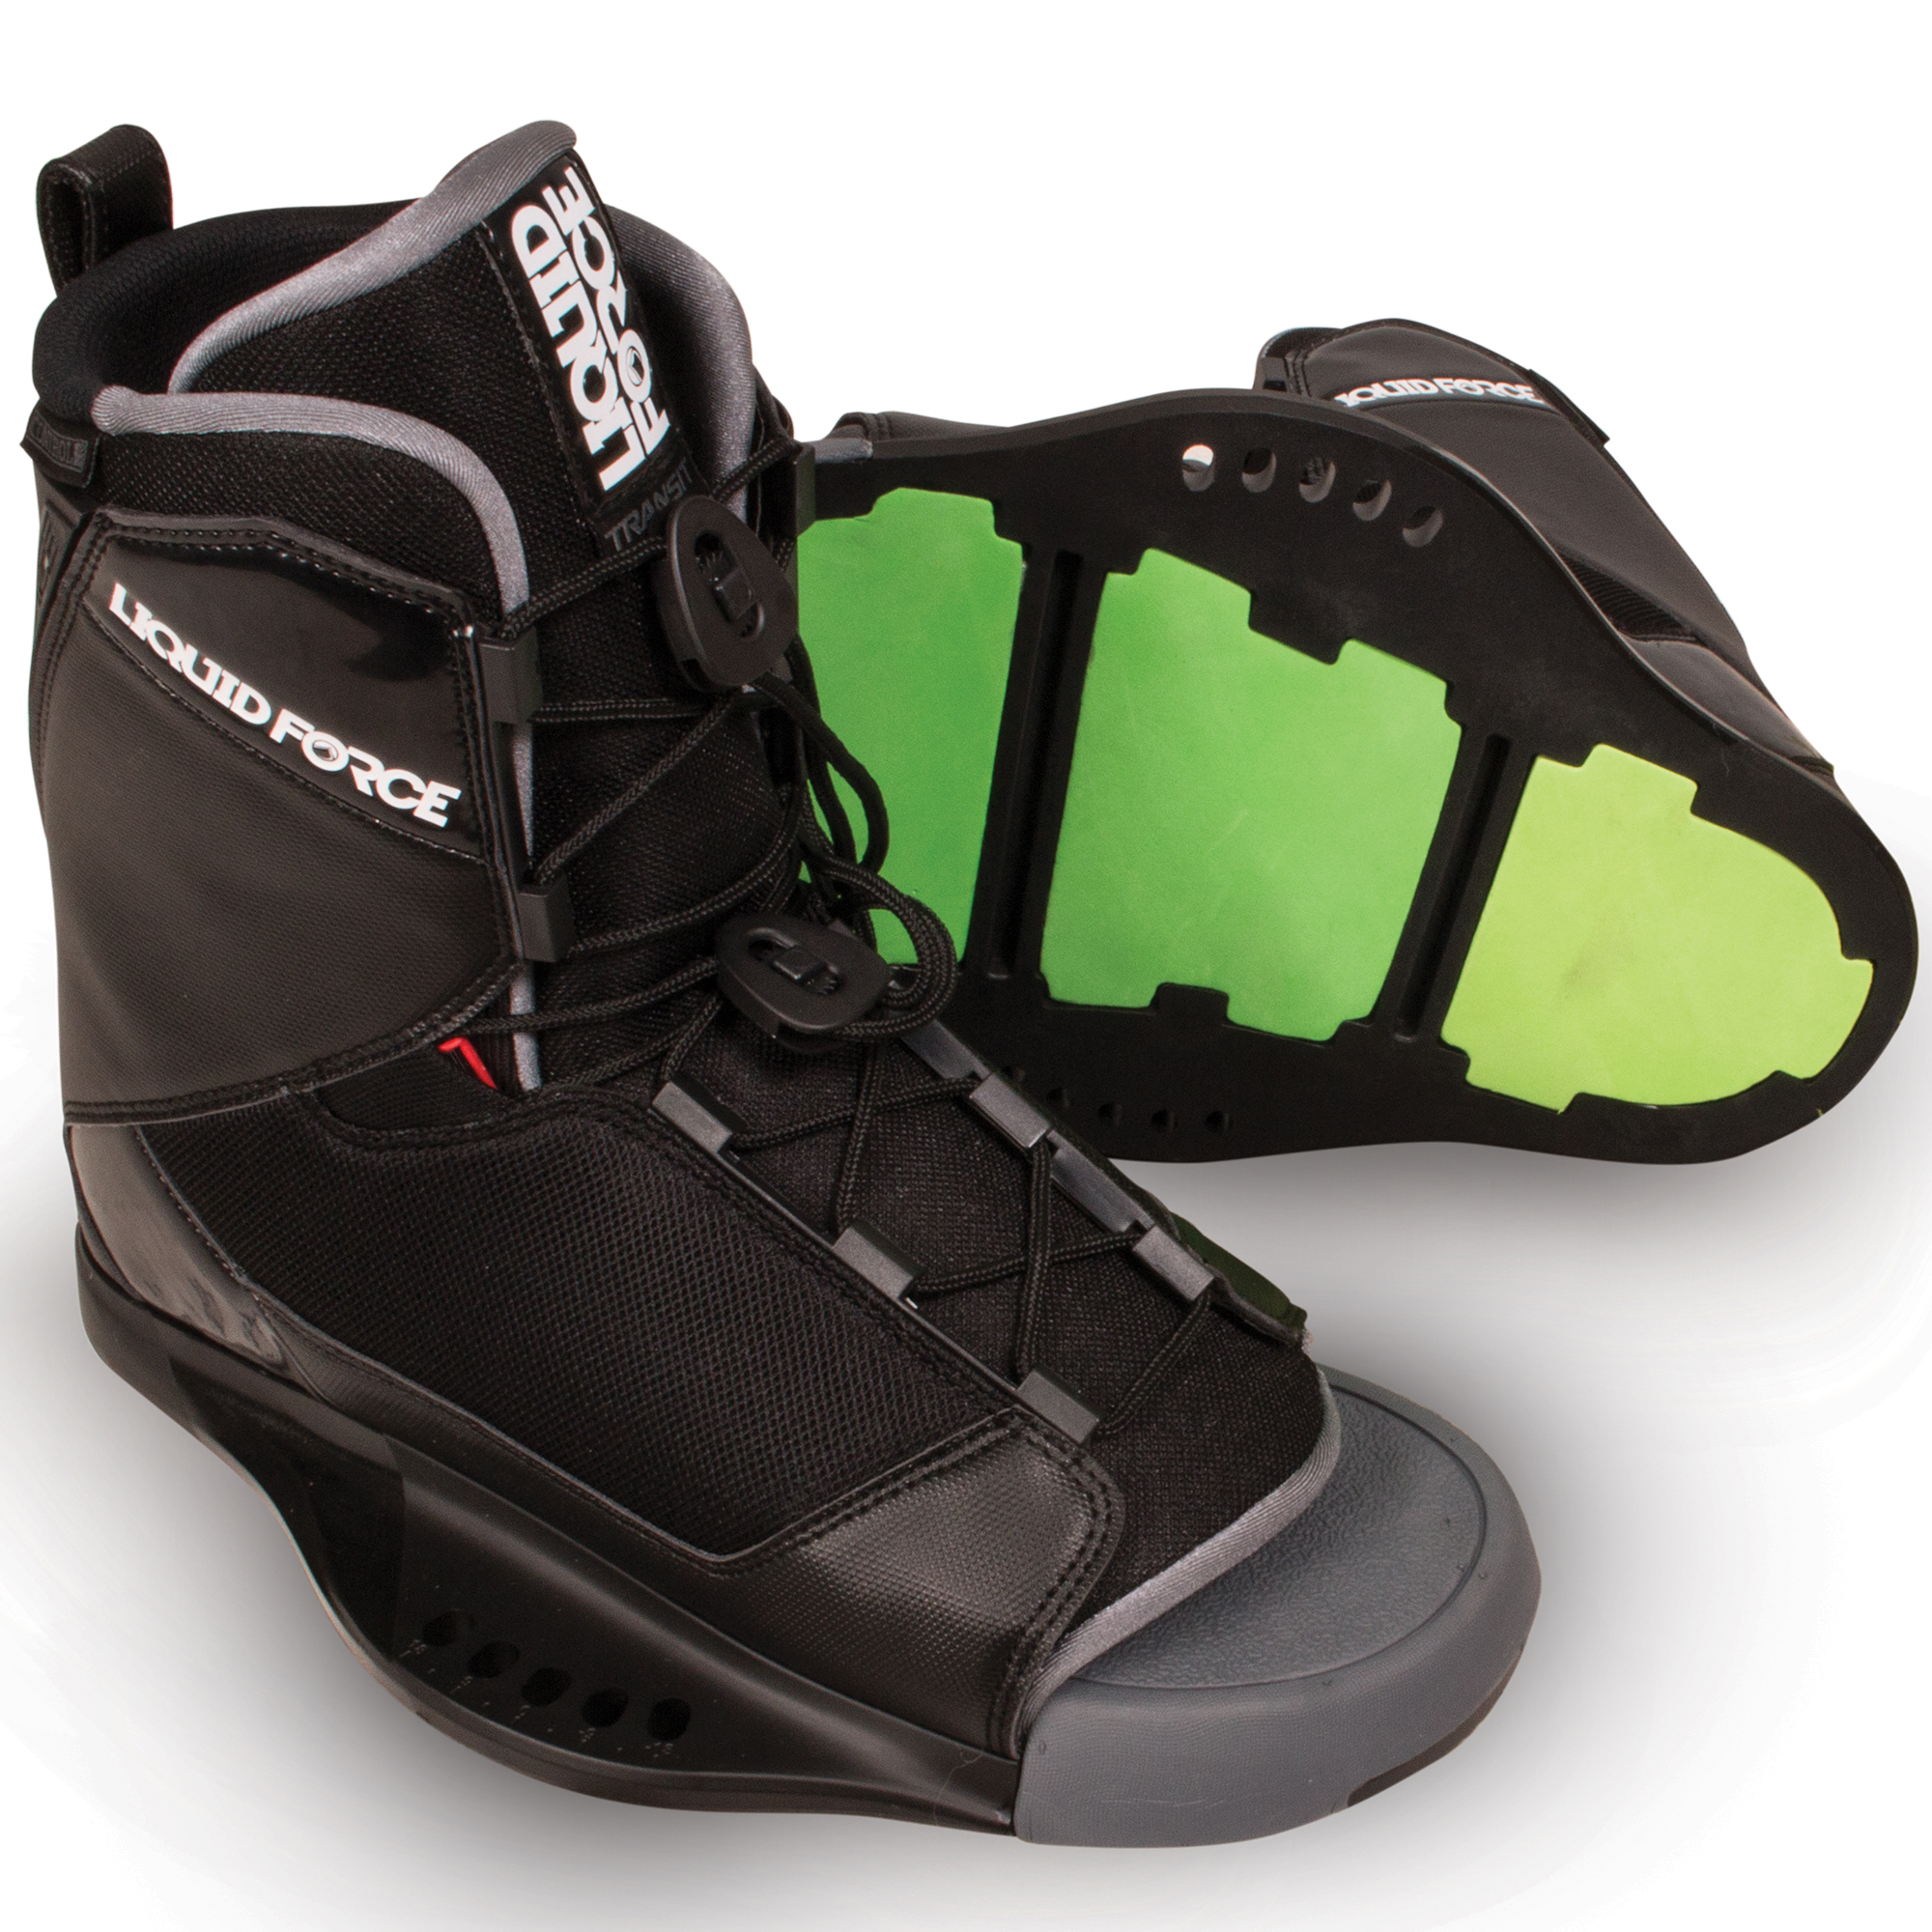 Liquid Force Classic Wakeboard With Transit Bindings